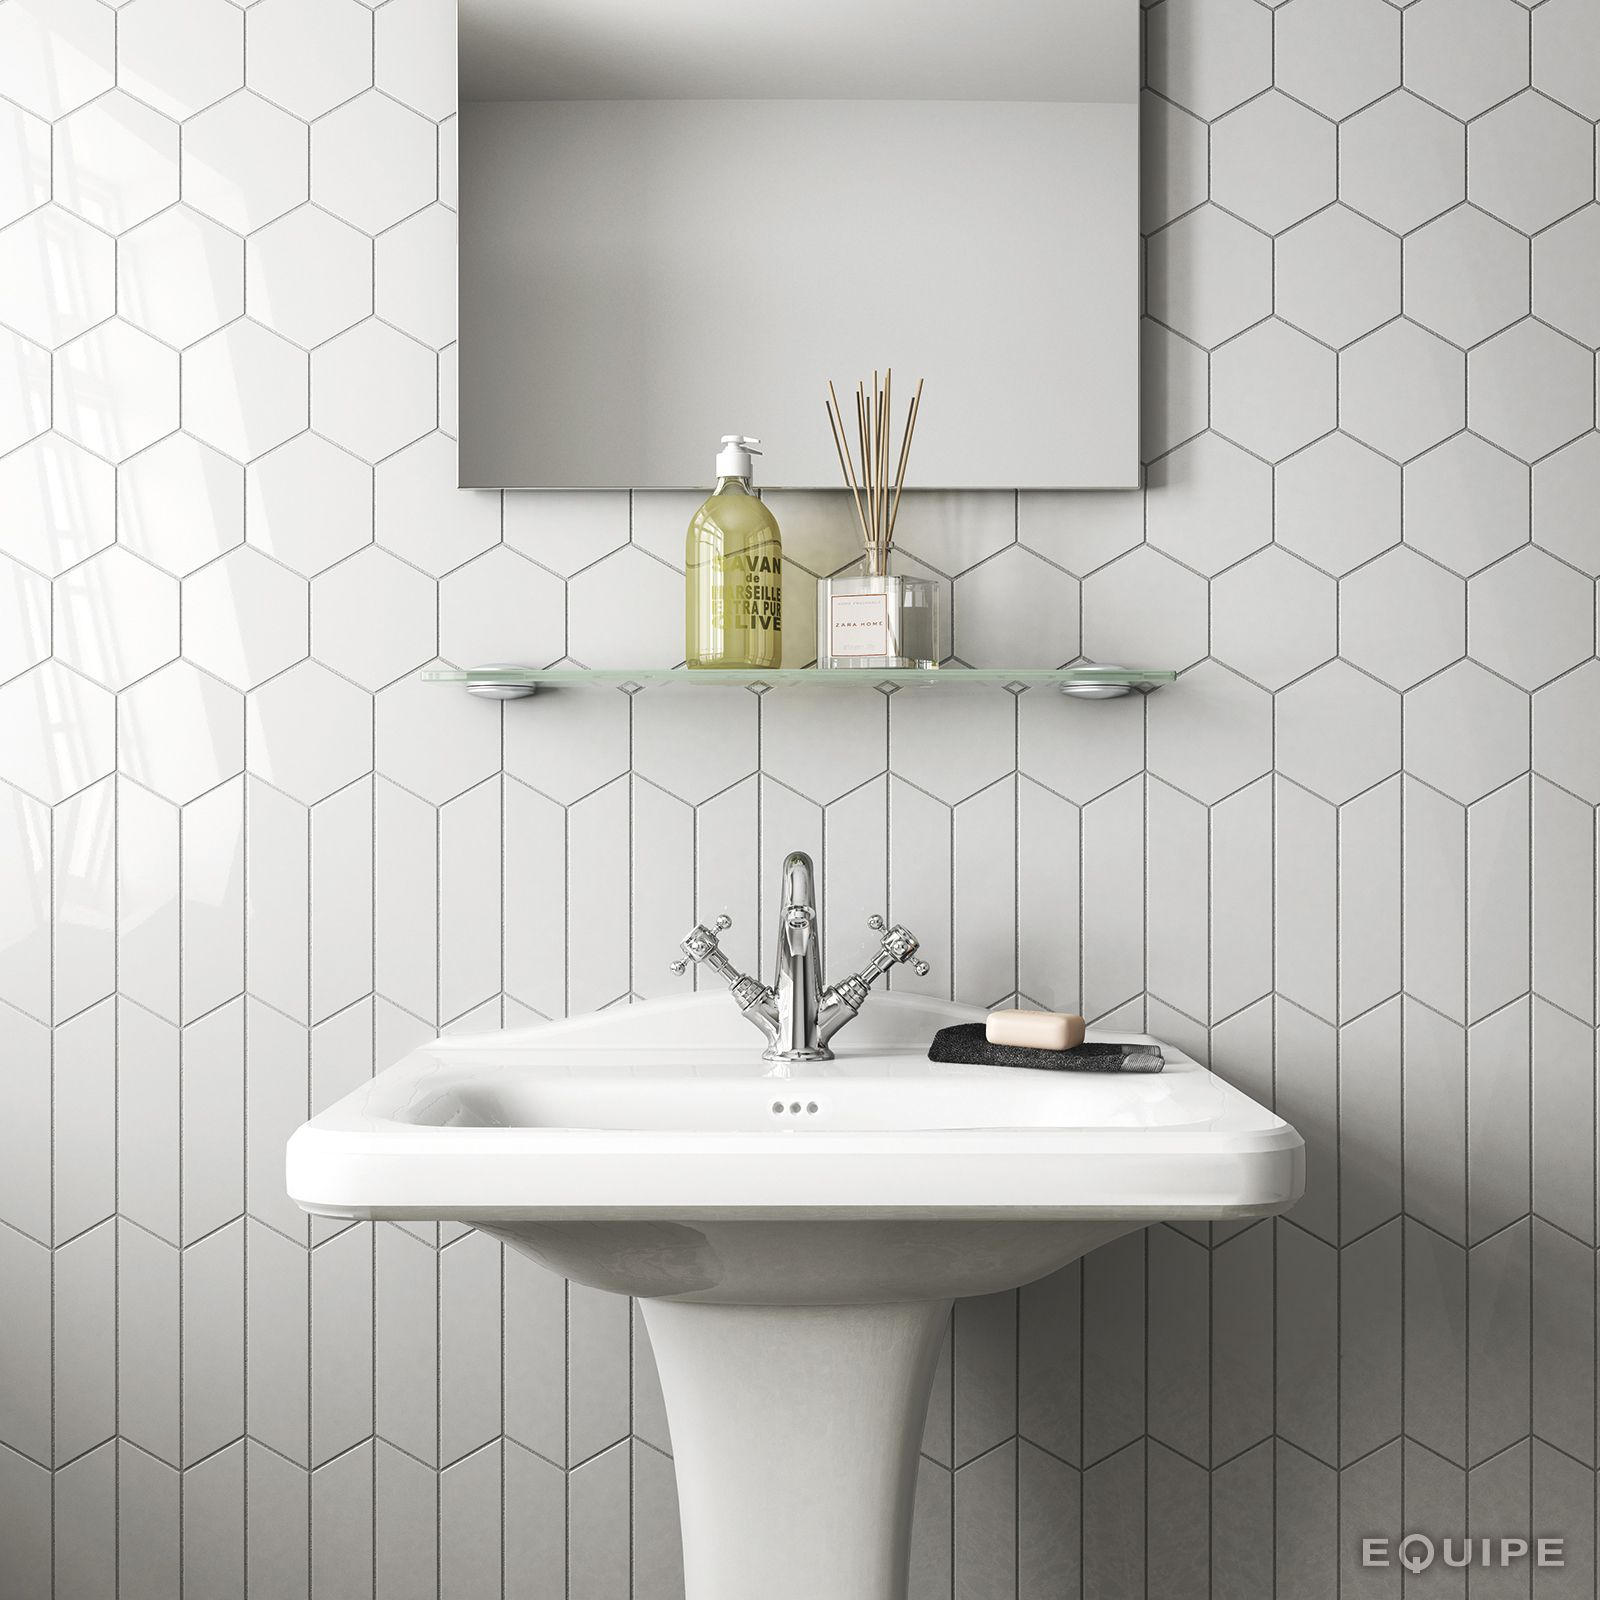 Chevron Wall White 18,6x5,2 / Scale Hexagon White 12,4x10,7 | Reno ...